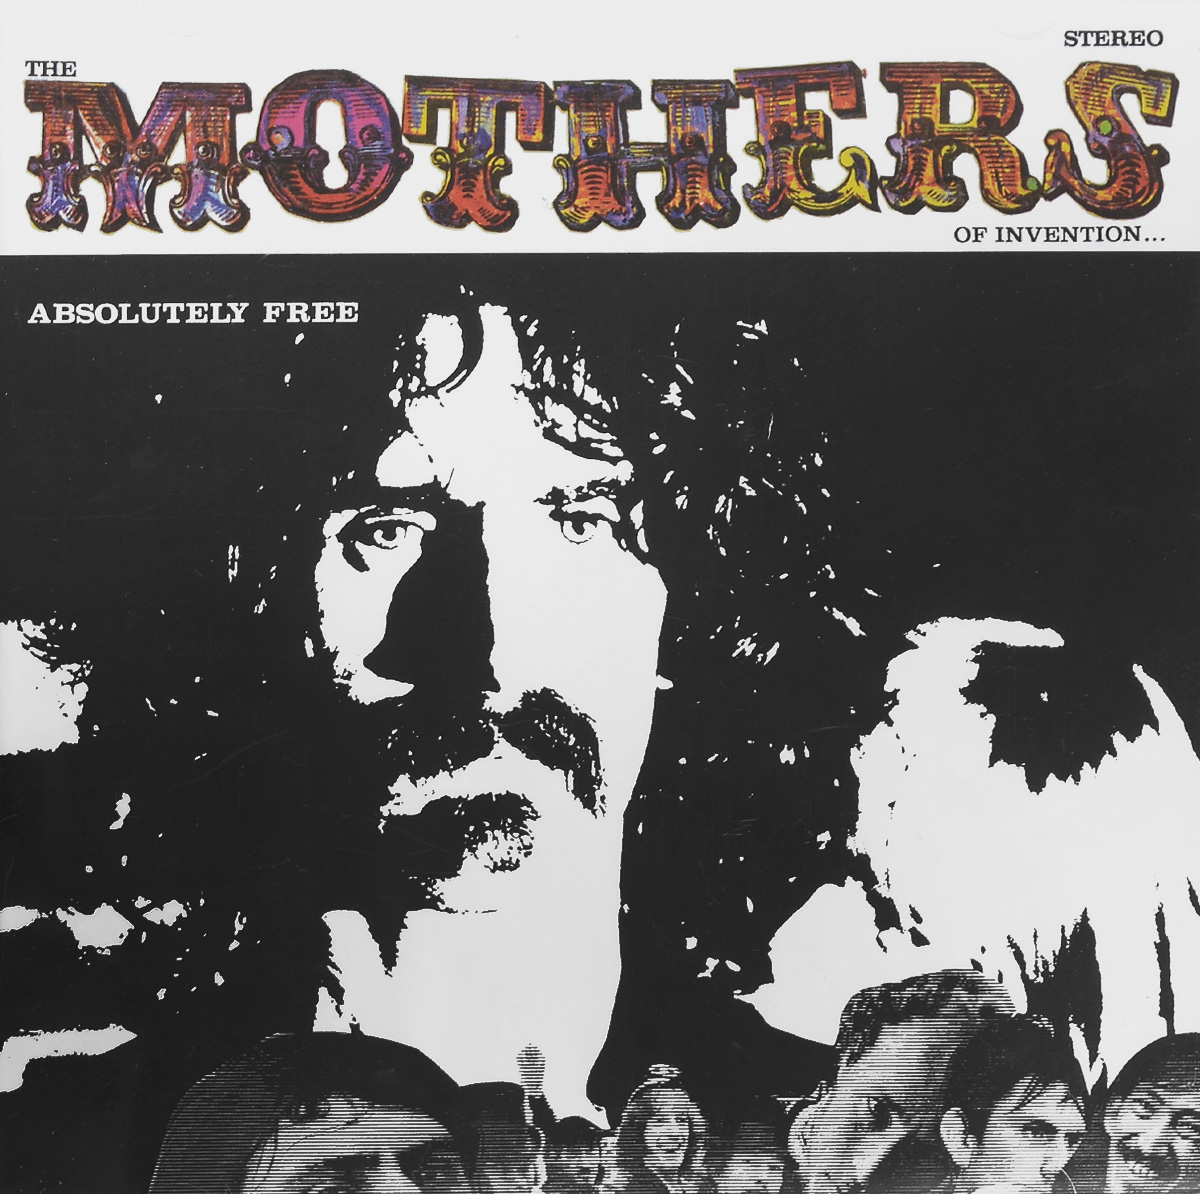 Фрэнк Заппа,The Mothers Of Invention Frank Zappa. The Mothers Of Invention. Absolutely Free kidd s the invention of wings